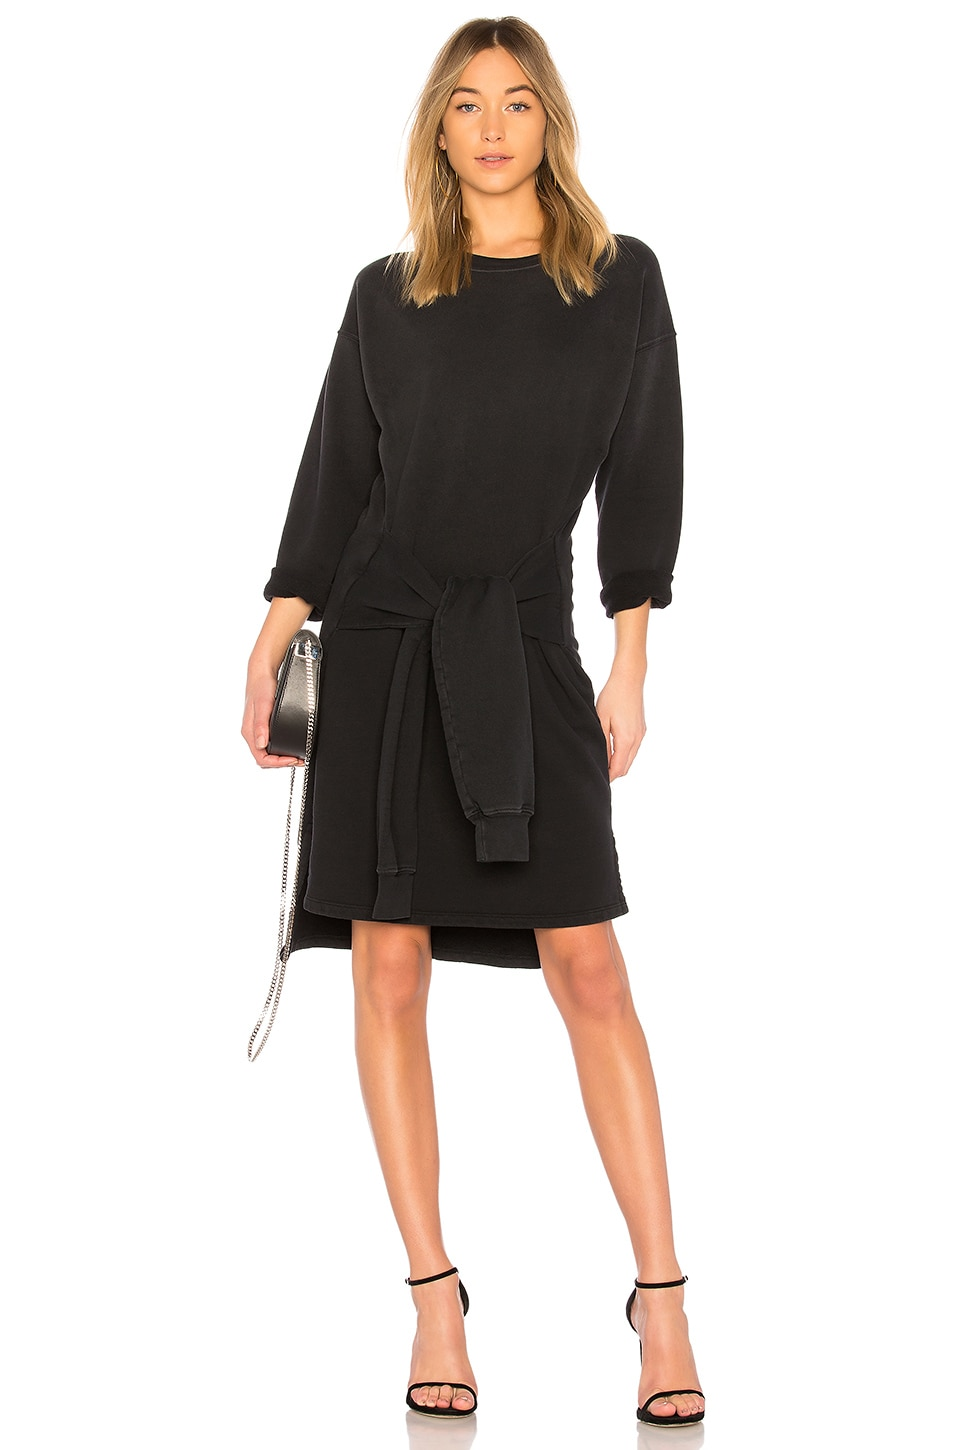 The Double Sweatshirt Dress by Current/Elliott